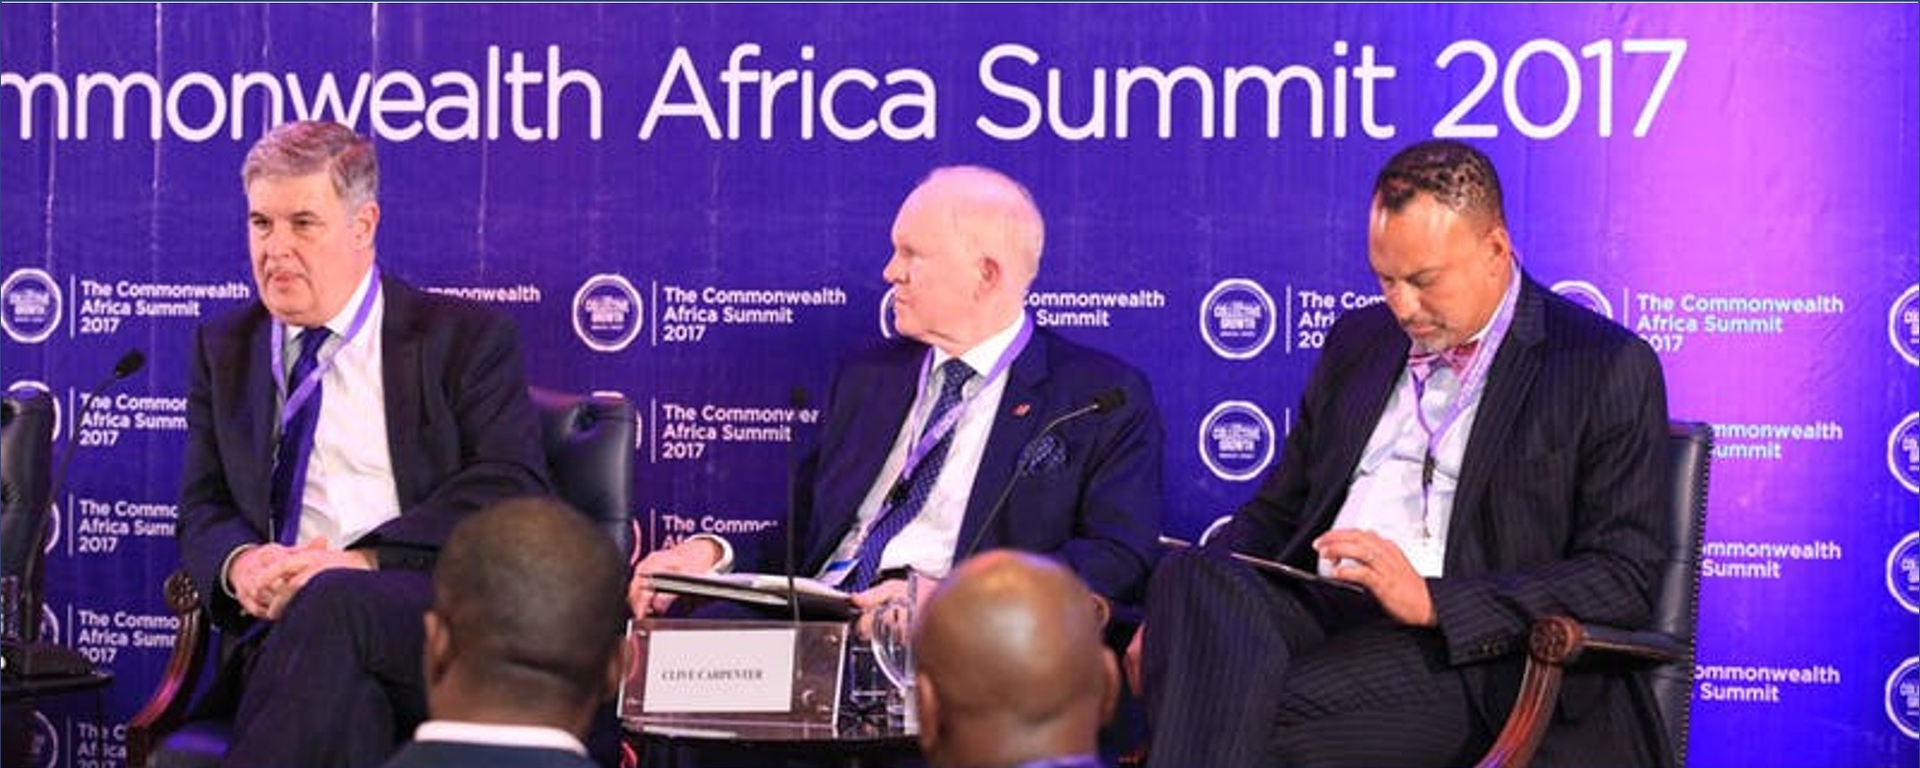 Commonwealth Africa Initiative - The Africa Forum New York 2019 Movemeback African event cover image